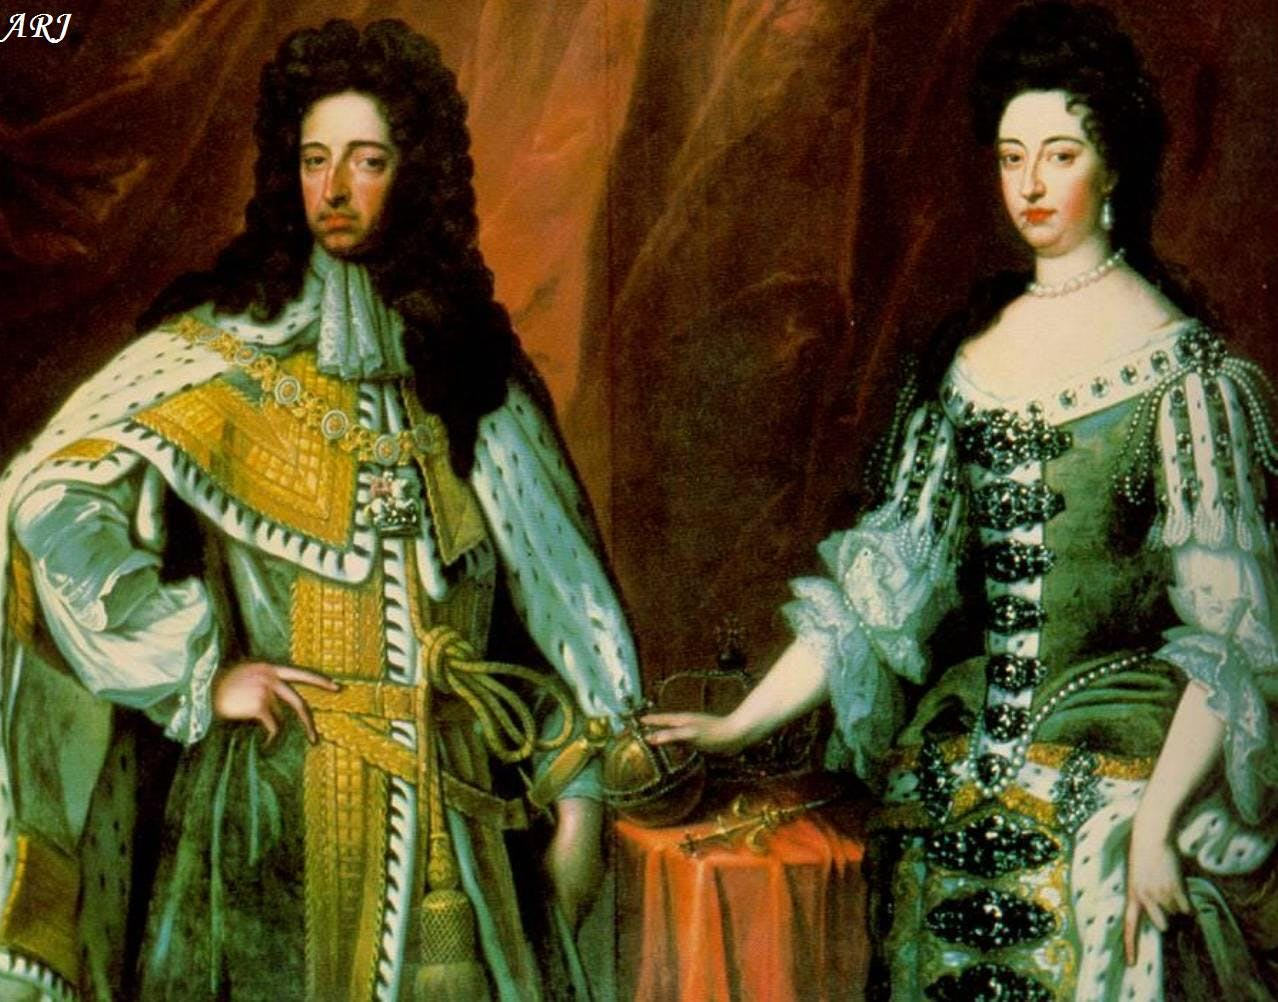 Queen William III and Mary II